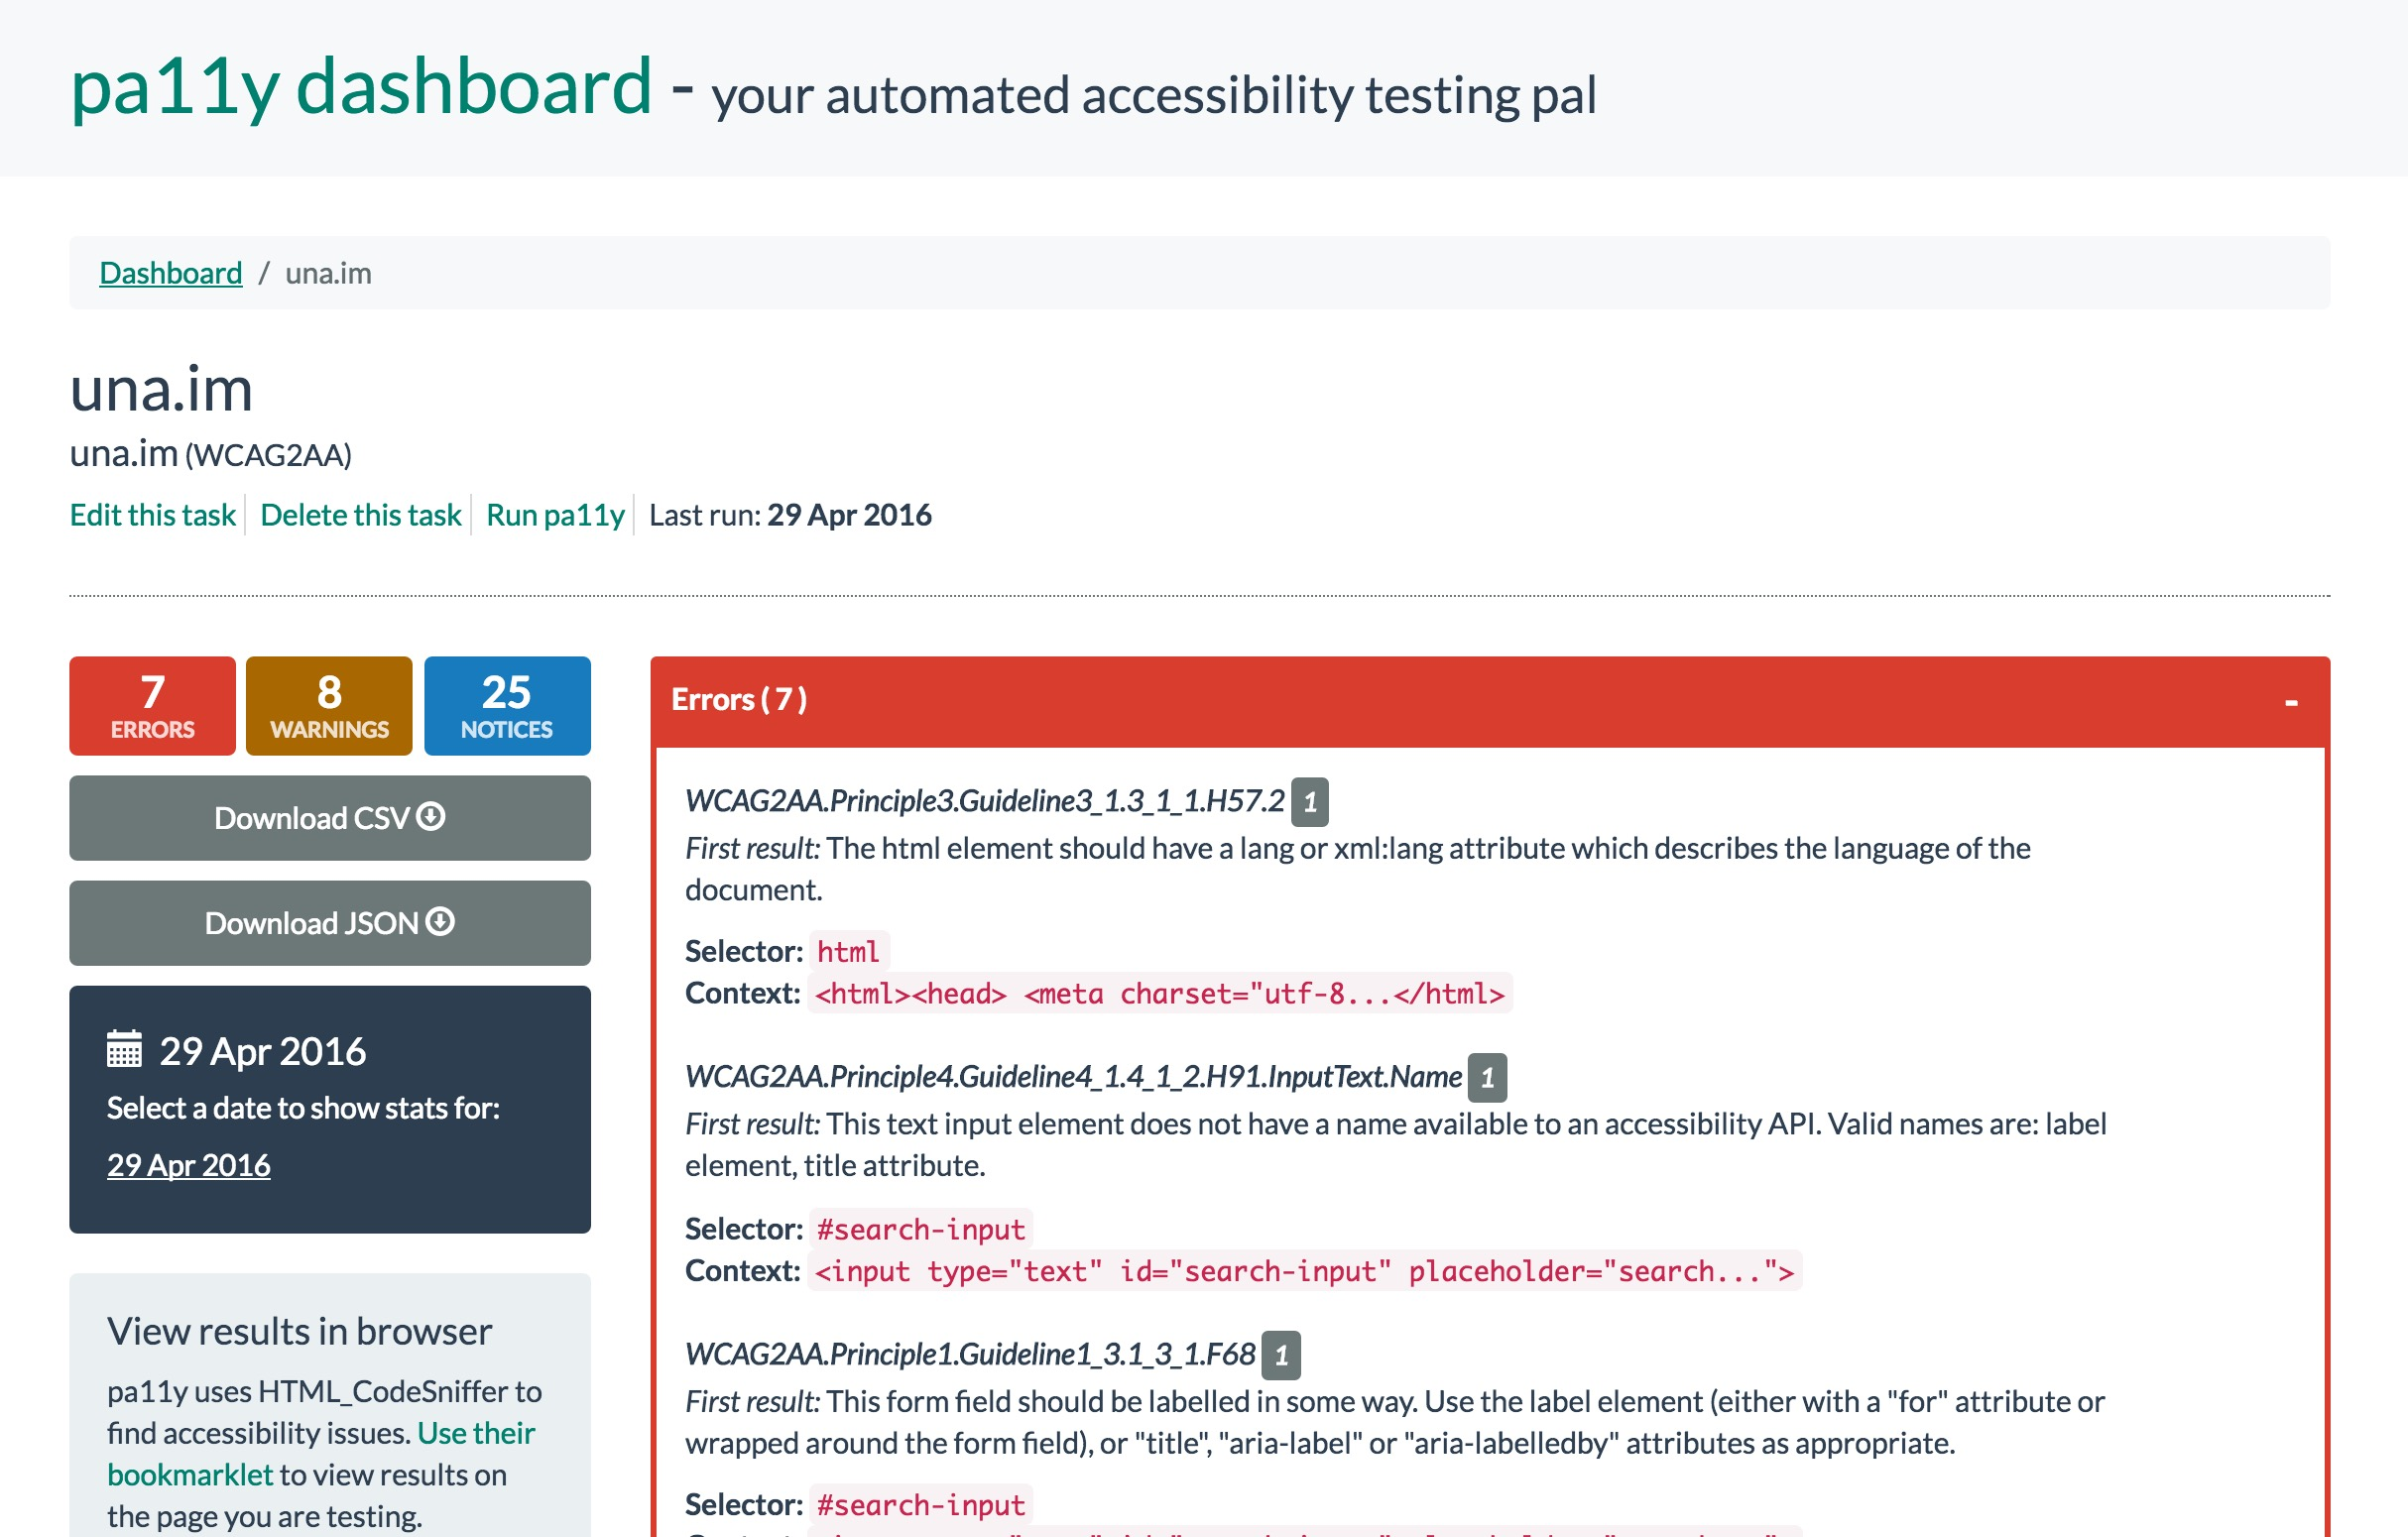 ✨Setting up An Accessibility Dashboard from Scratch with Pa11y on